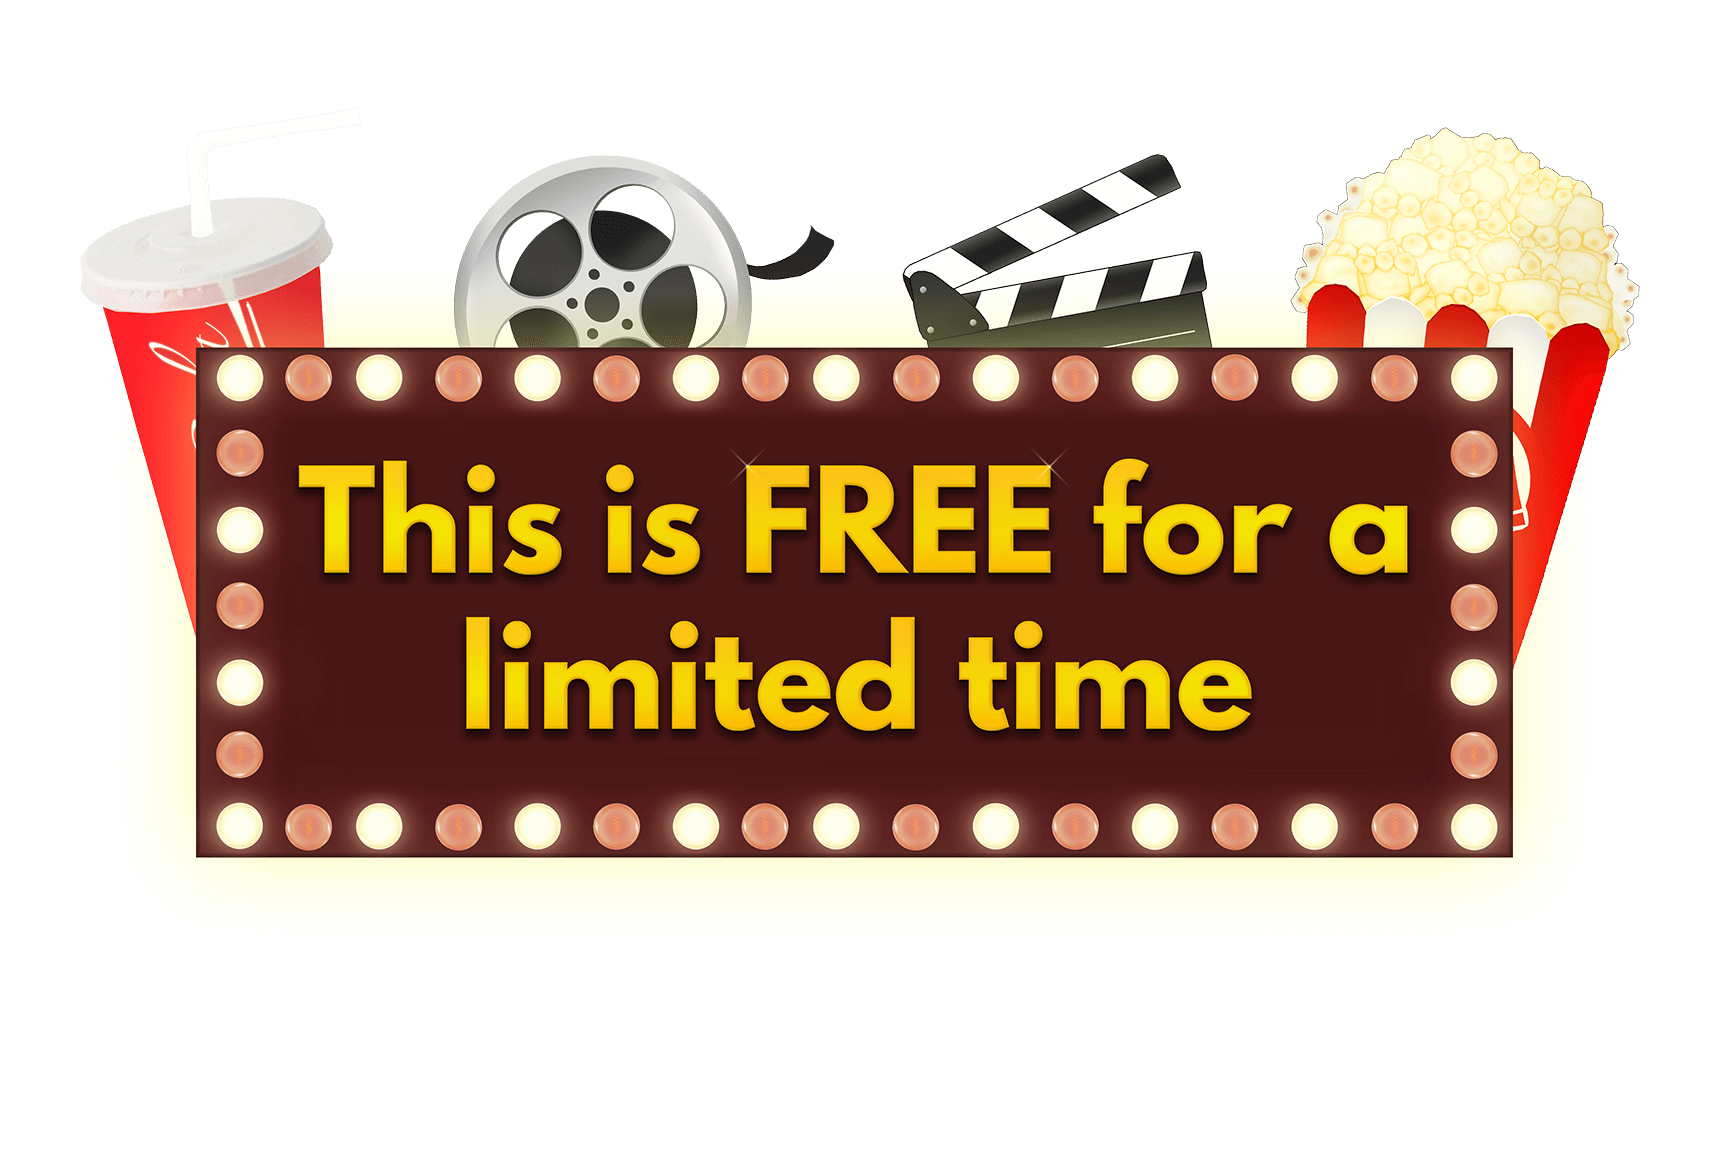 This script is FREE for a limited time!